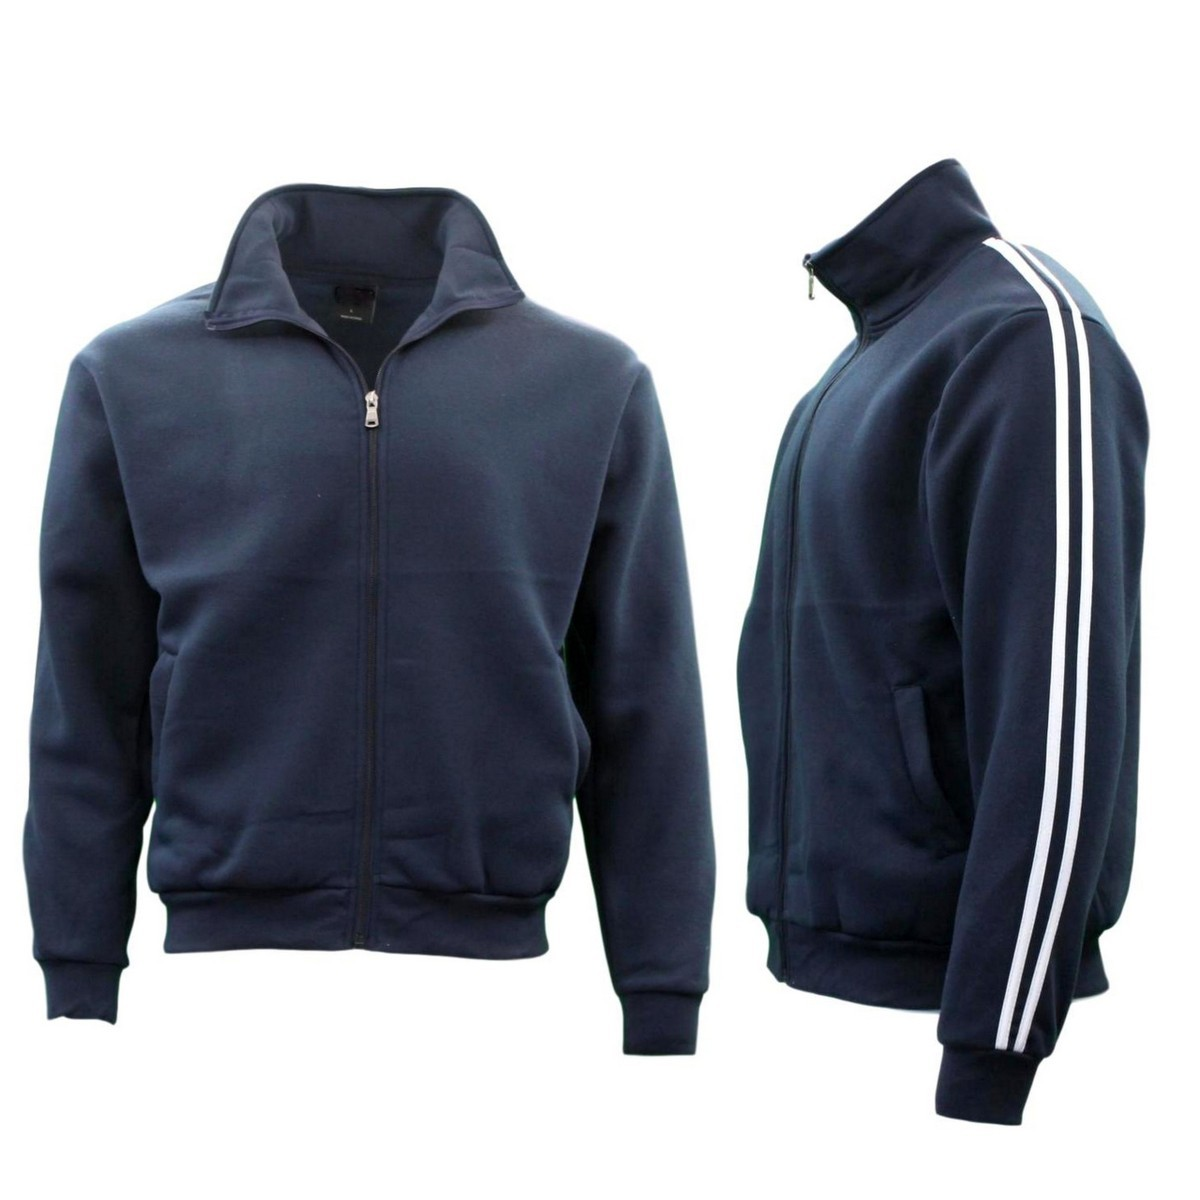 Men-039-s-Casual-Sweatshirt-Jacket-Full-Zip-Stand-Collar-Sports-Jumper-Hoodie thumbnail 13